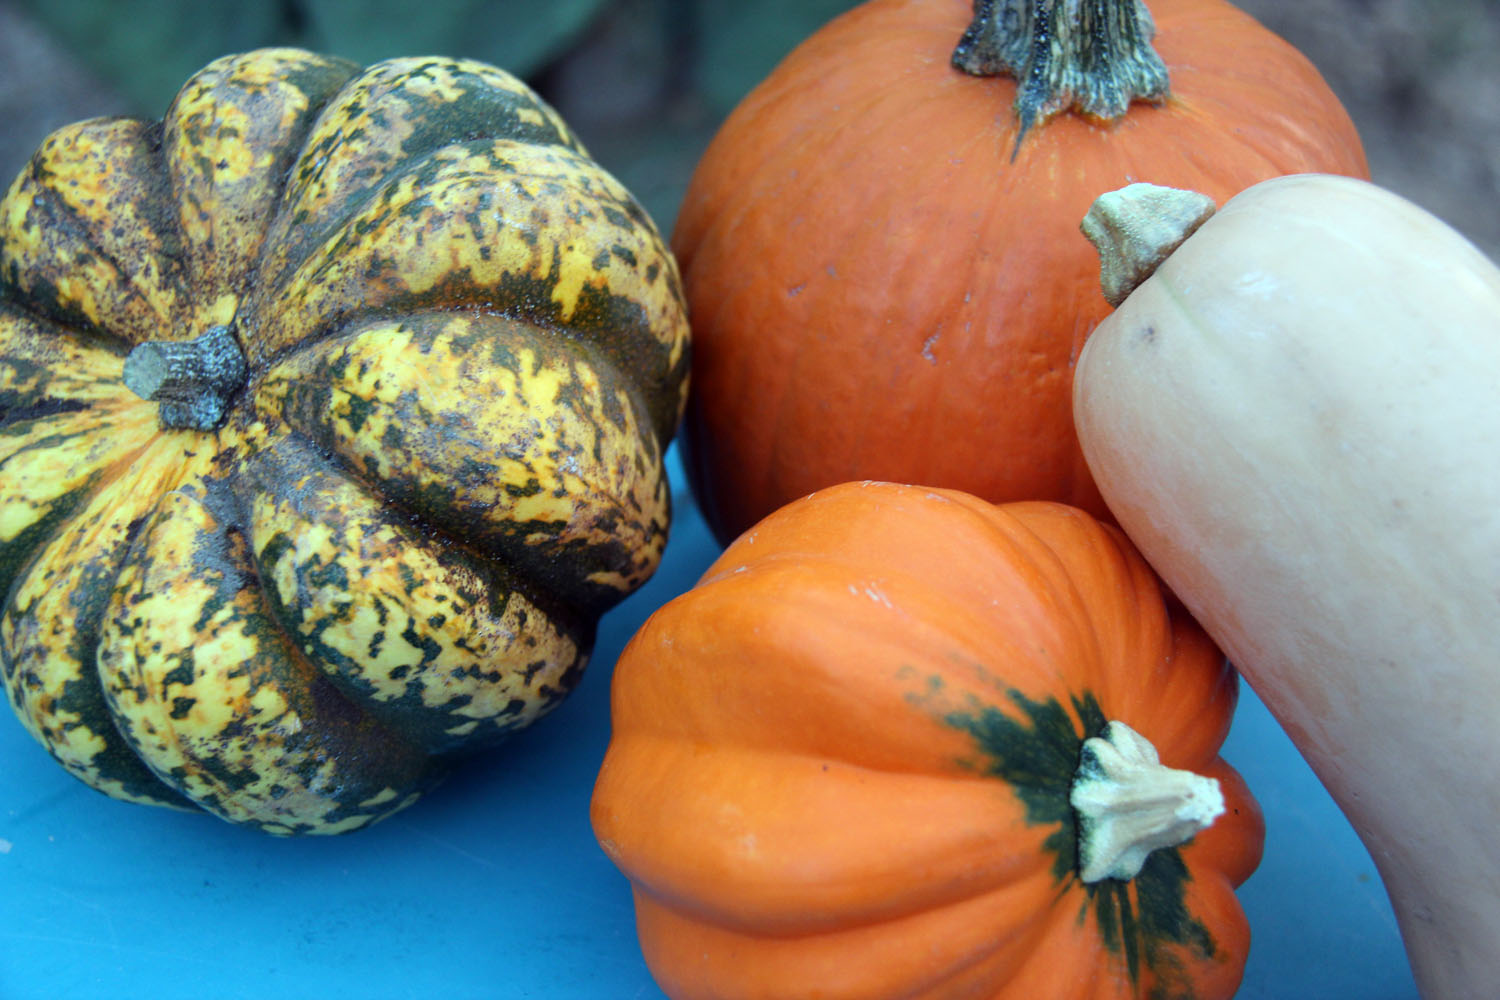 Variety of Winter Squash (Photo By: Sarah Pelfini/Arizona Sonoran News)